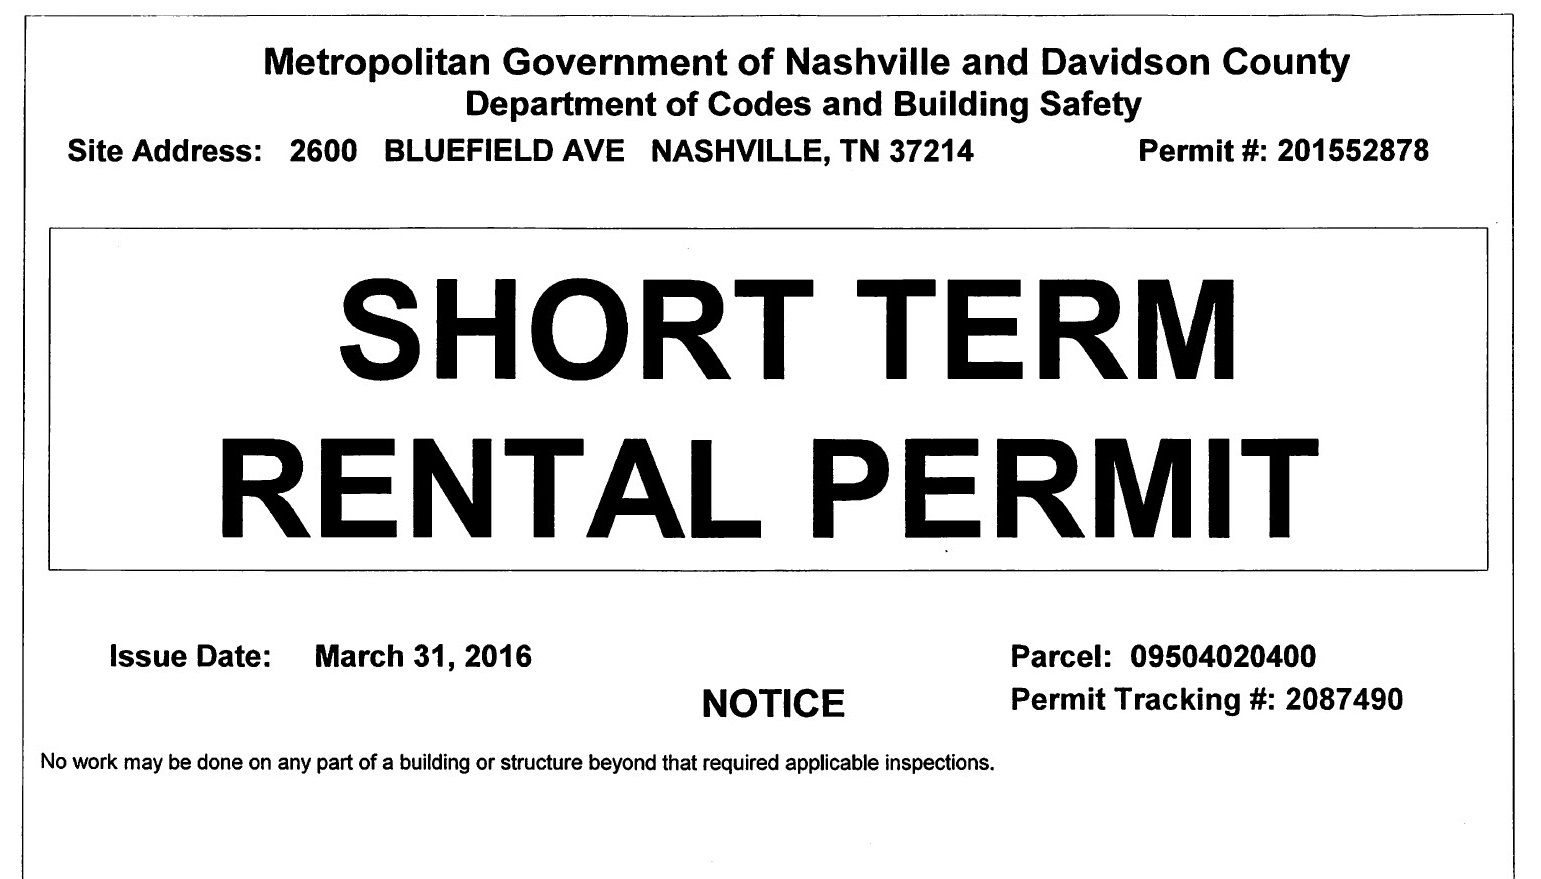 Legally Permitted by the Metro Government of Nashville and Davidson County